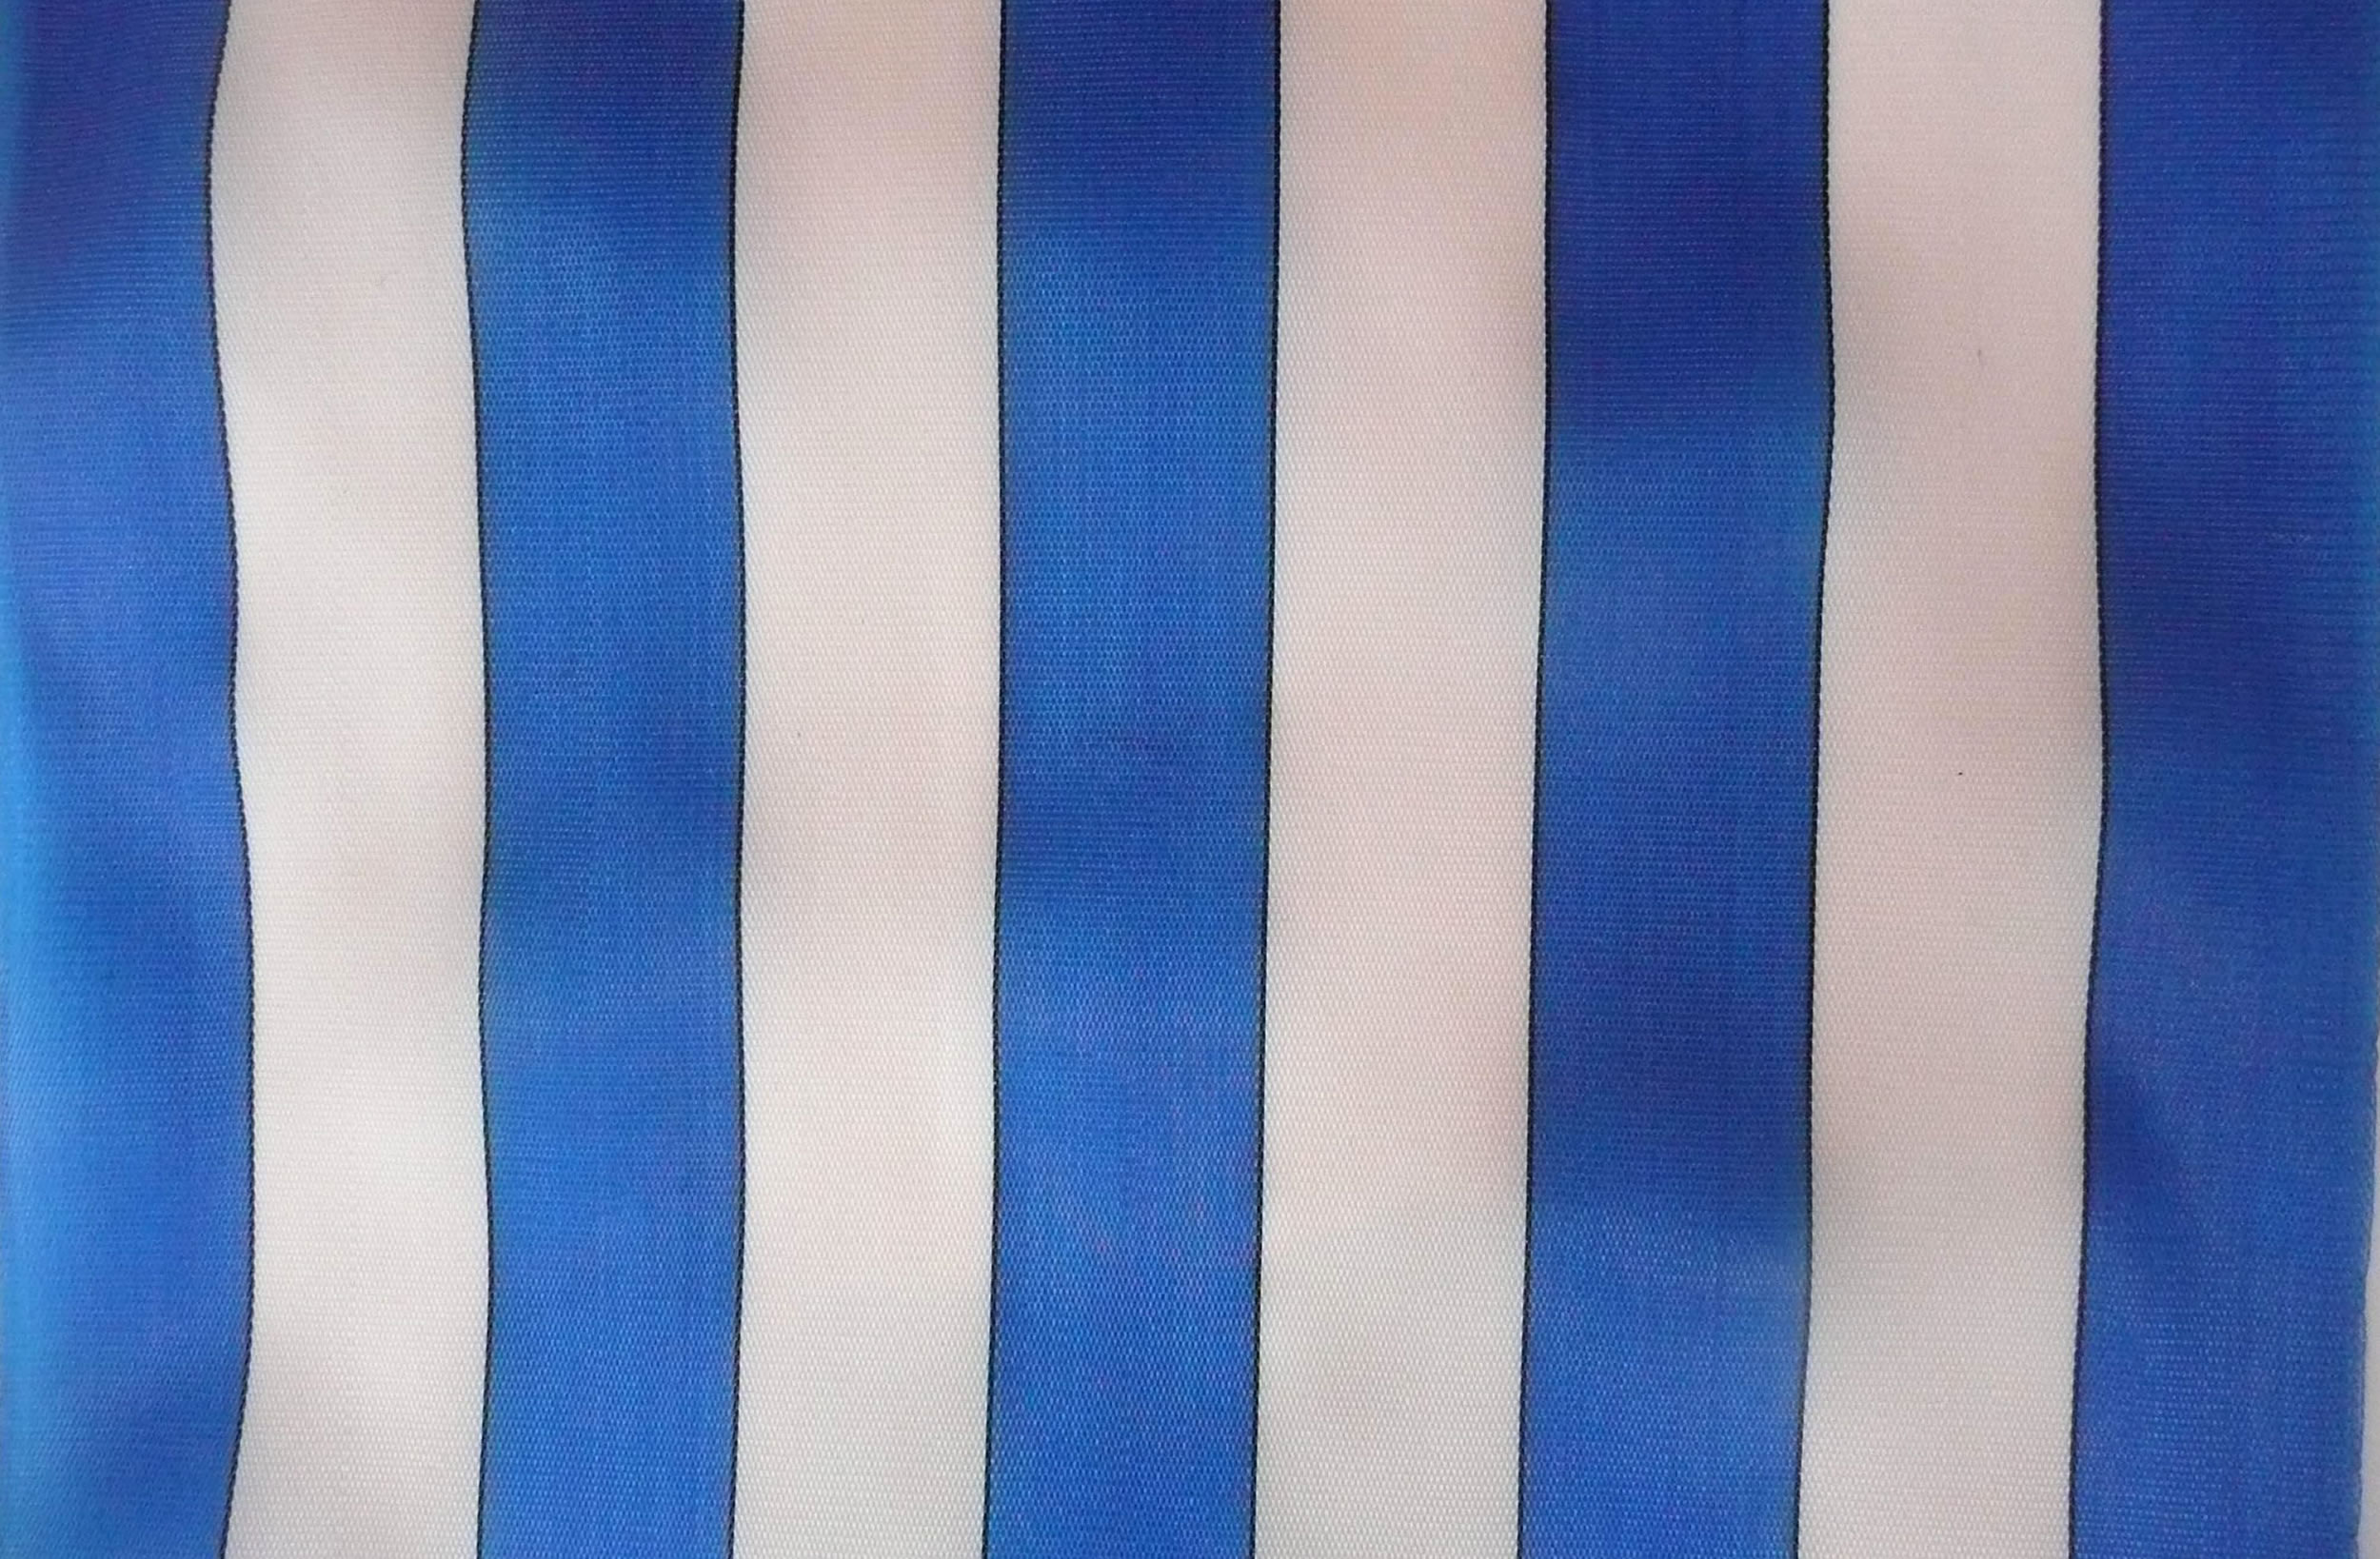 Blue and White Waterproof Deckchair Fabric